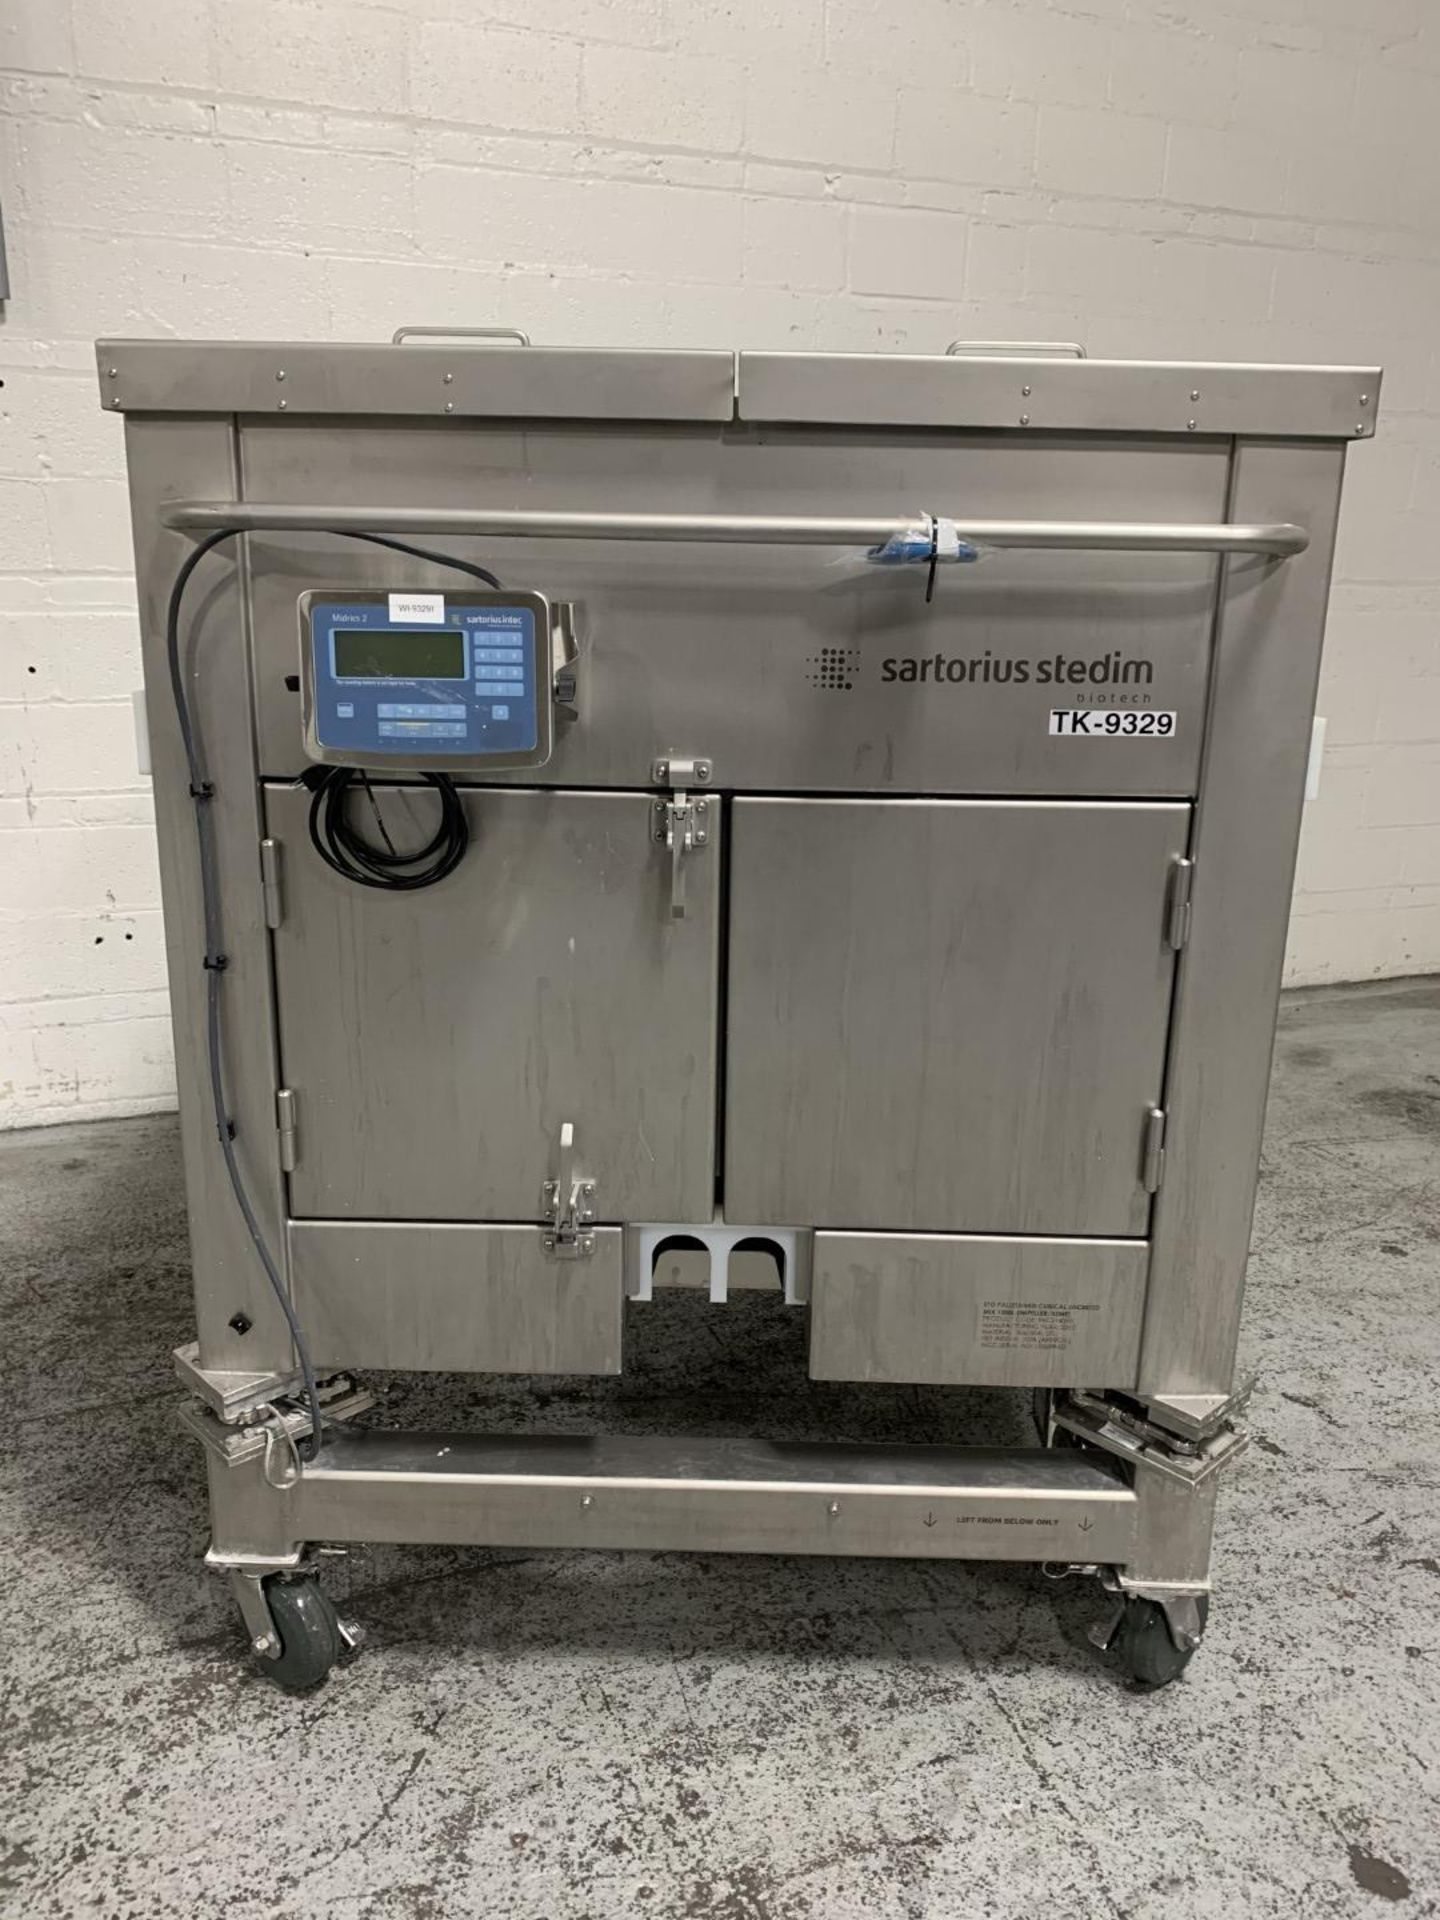 Lot 7 - 1000 Liter Sartorius ETO Palletank, 304 stainless steel with load cells and readout